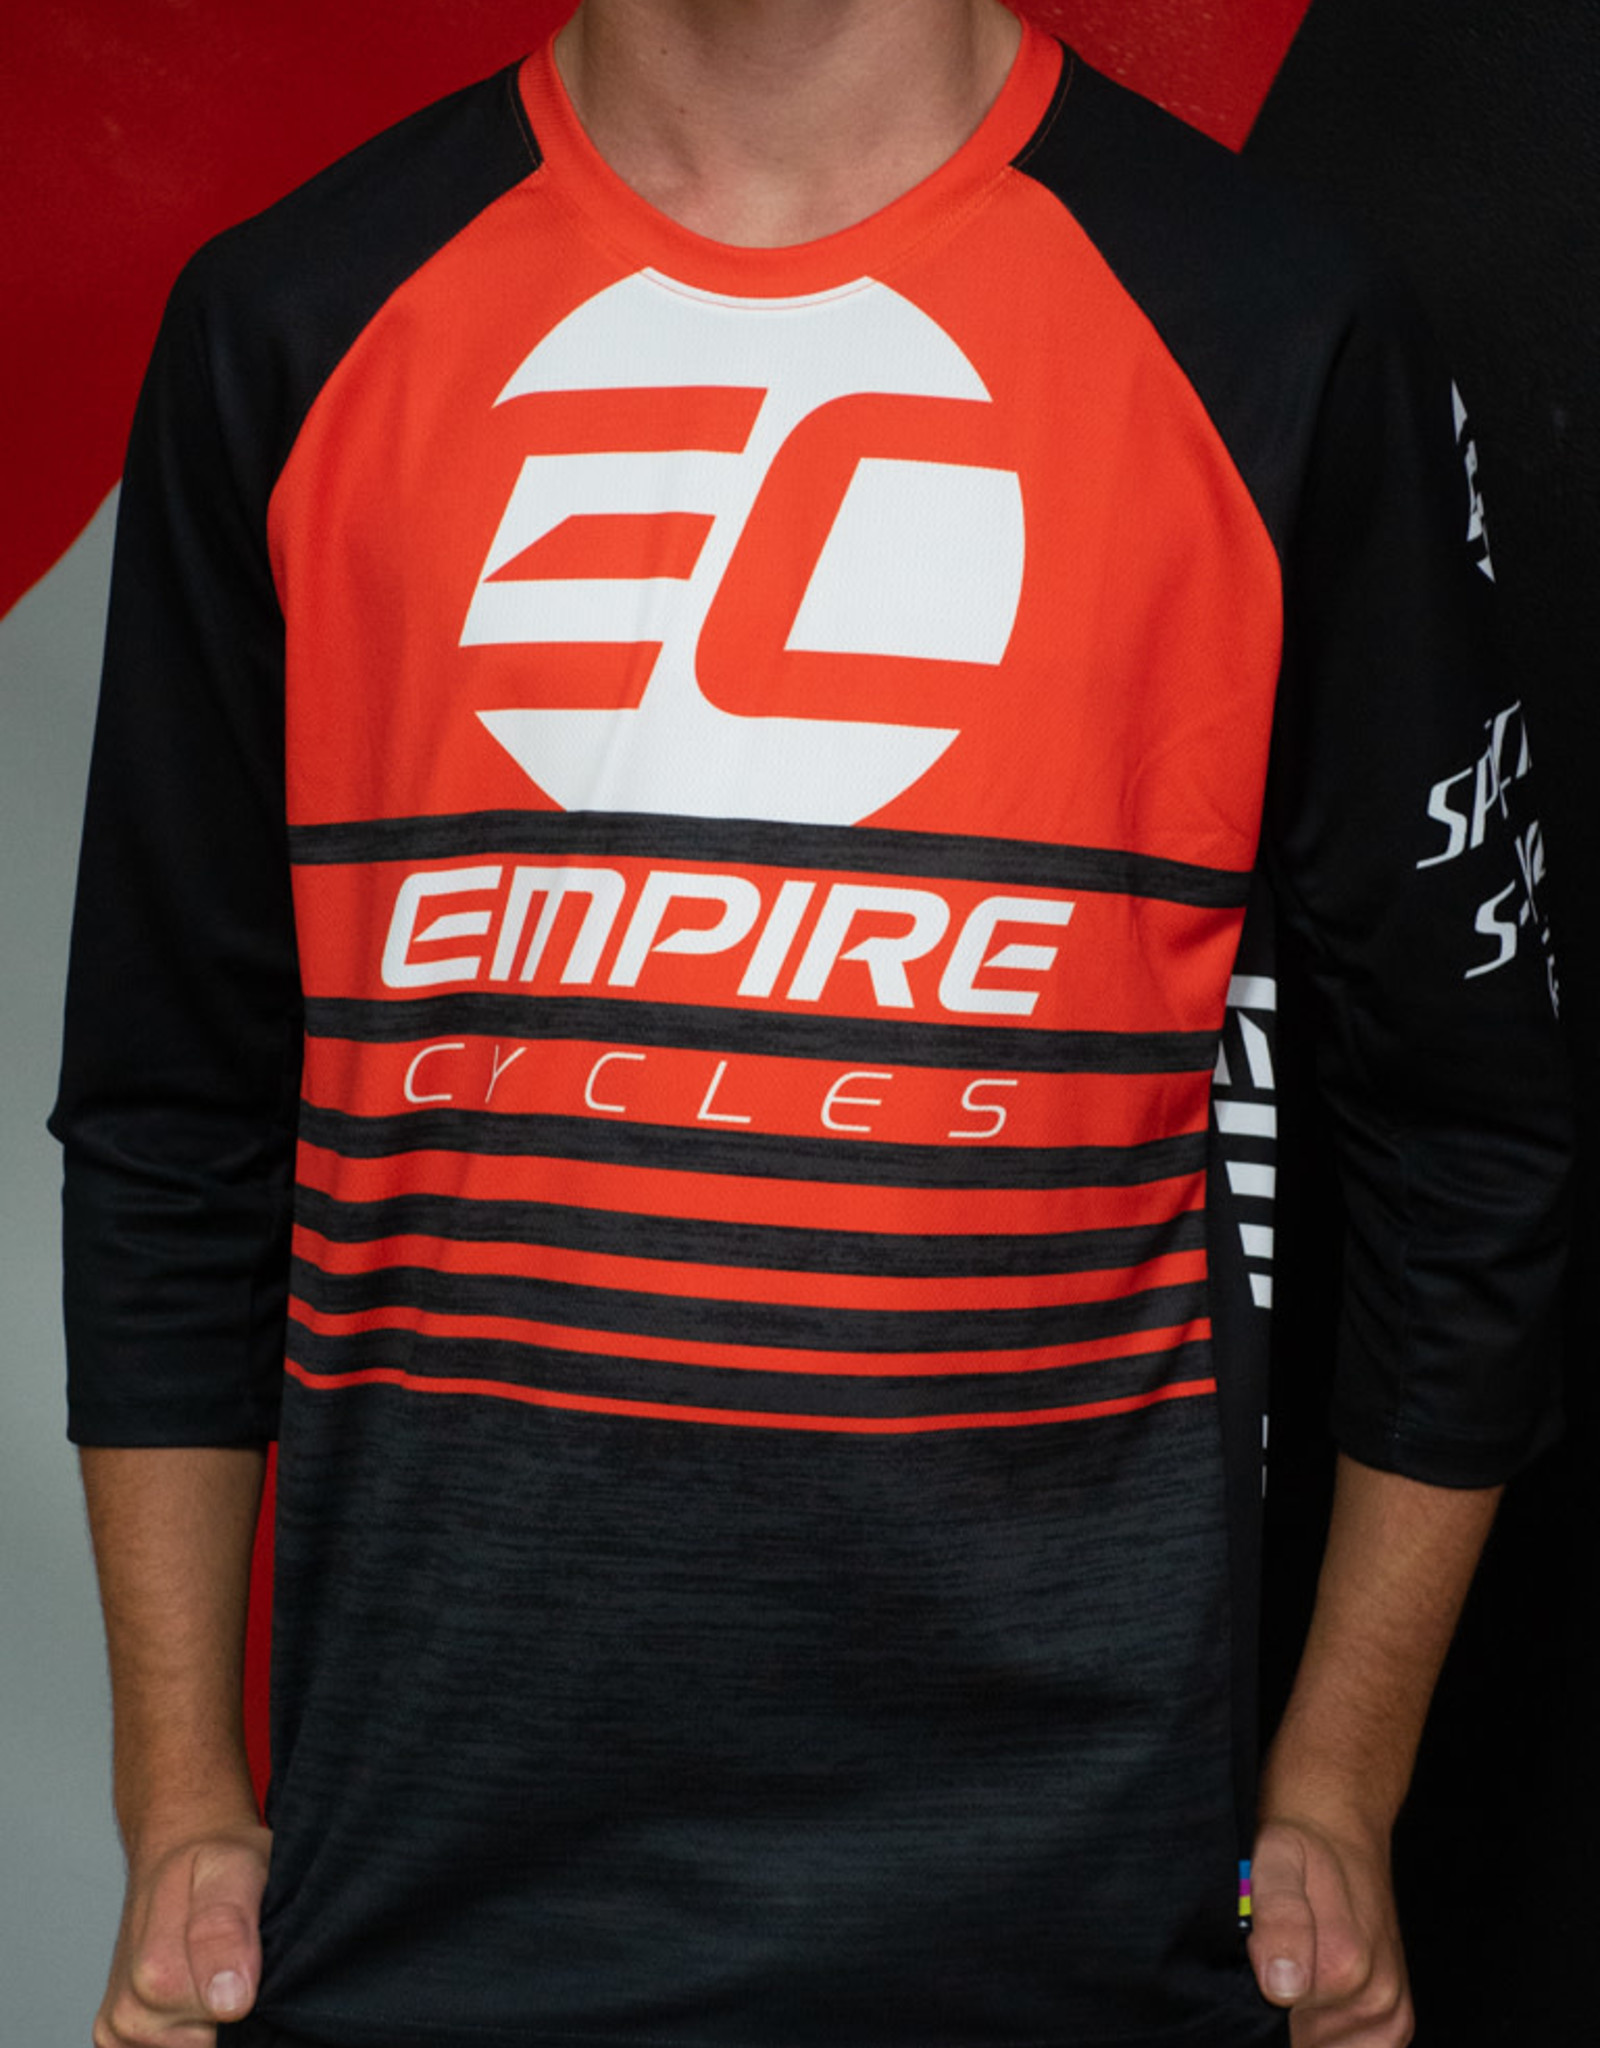 Empire Cycles Empire Cycles 3/4 Race Jersey